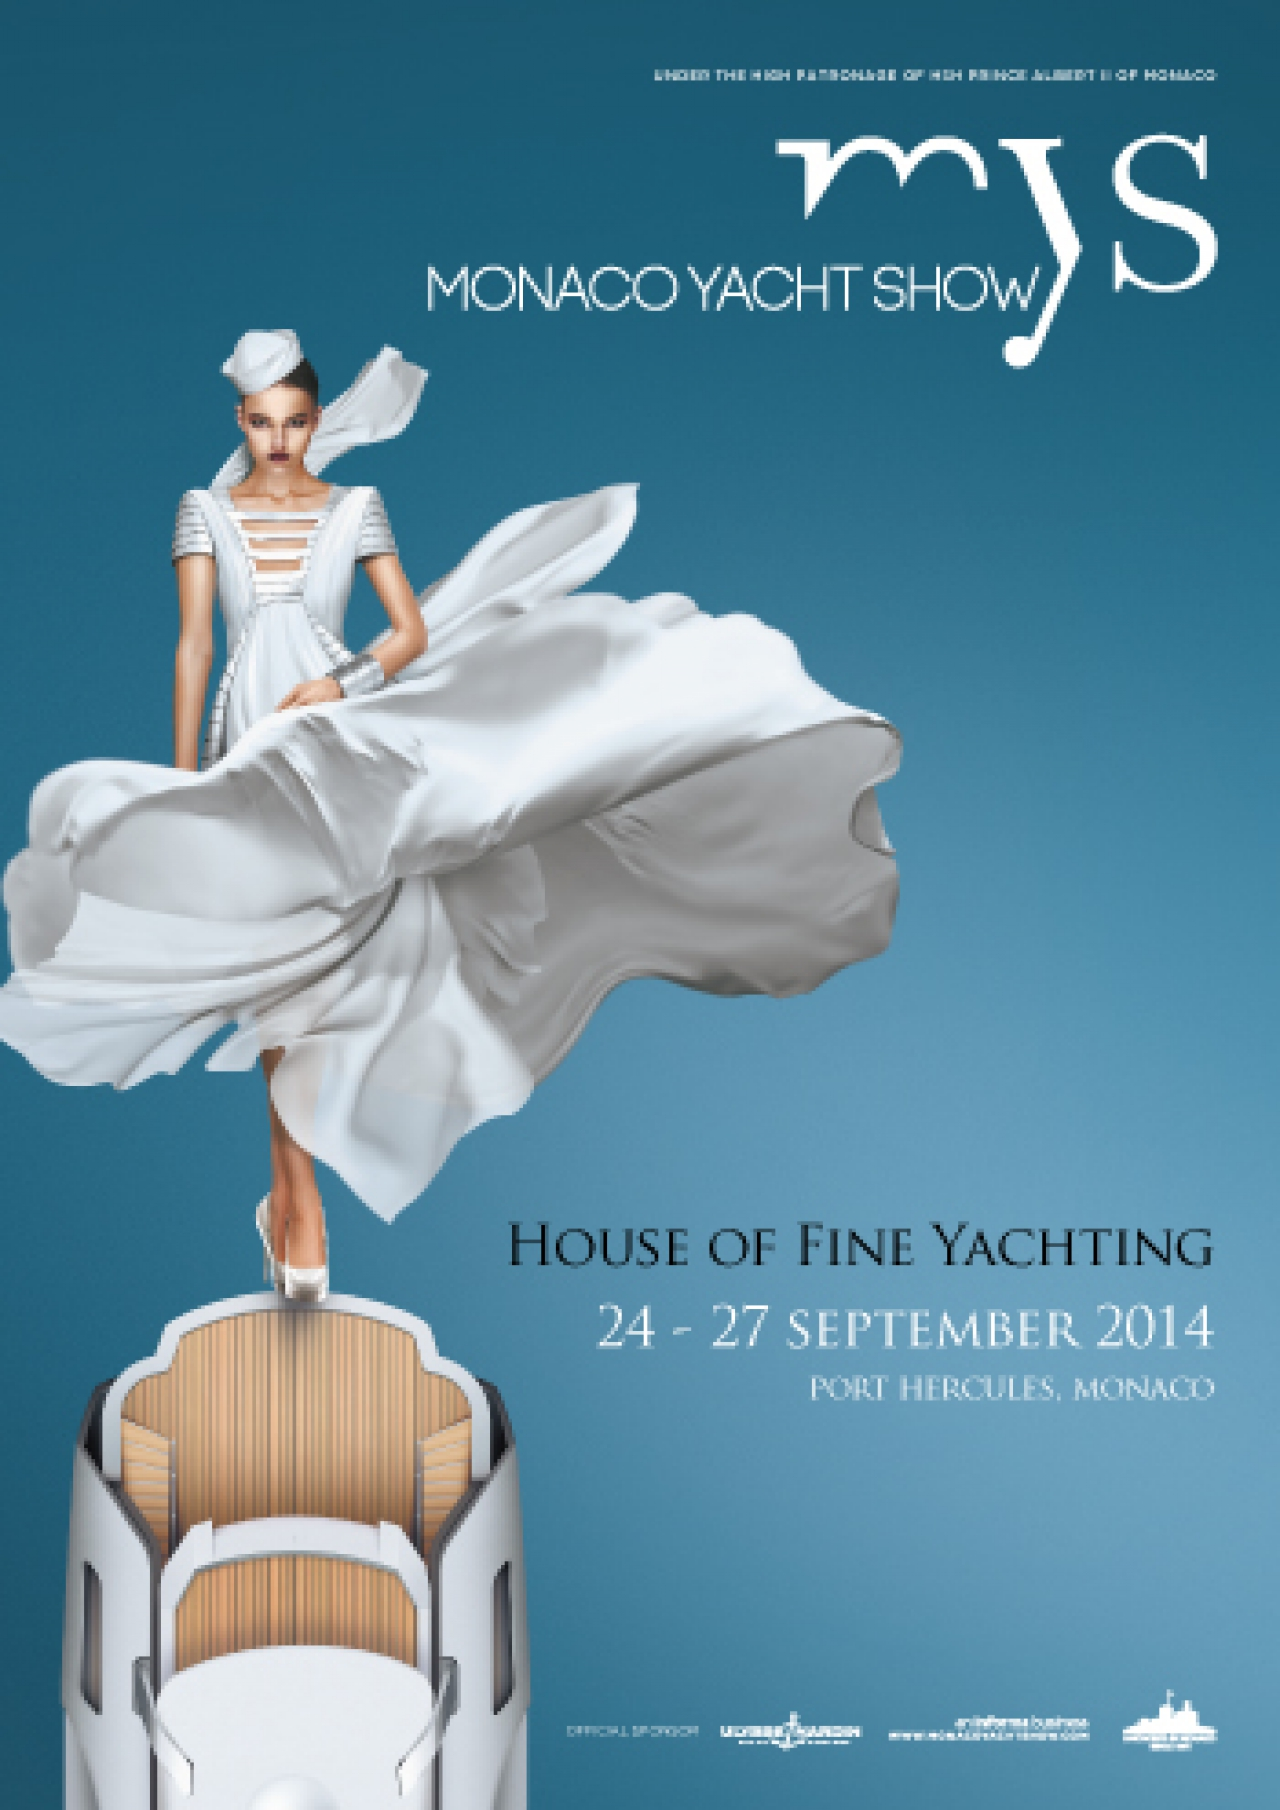 PrivatSea at the Monaco Yacht Show 2014